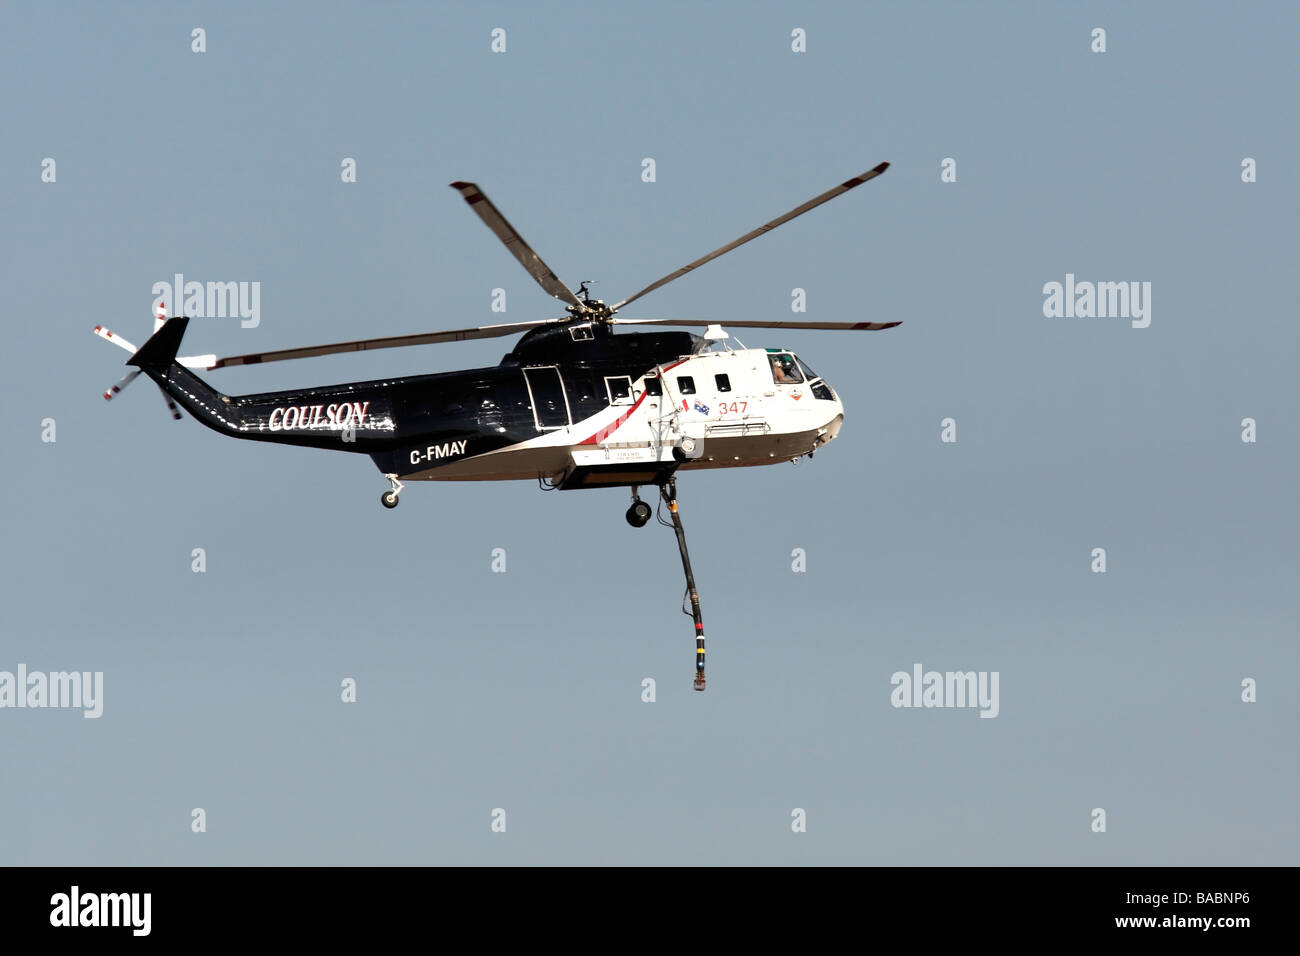 Coulson C FMAY Fire Fighting Helicopter HTK 347 - Stock Image